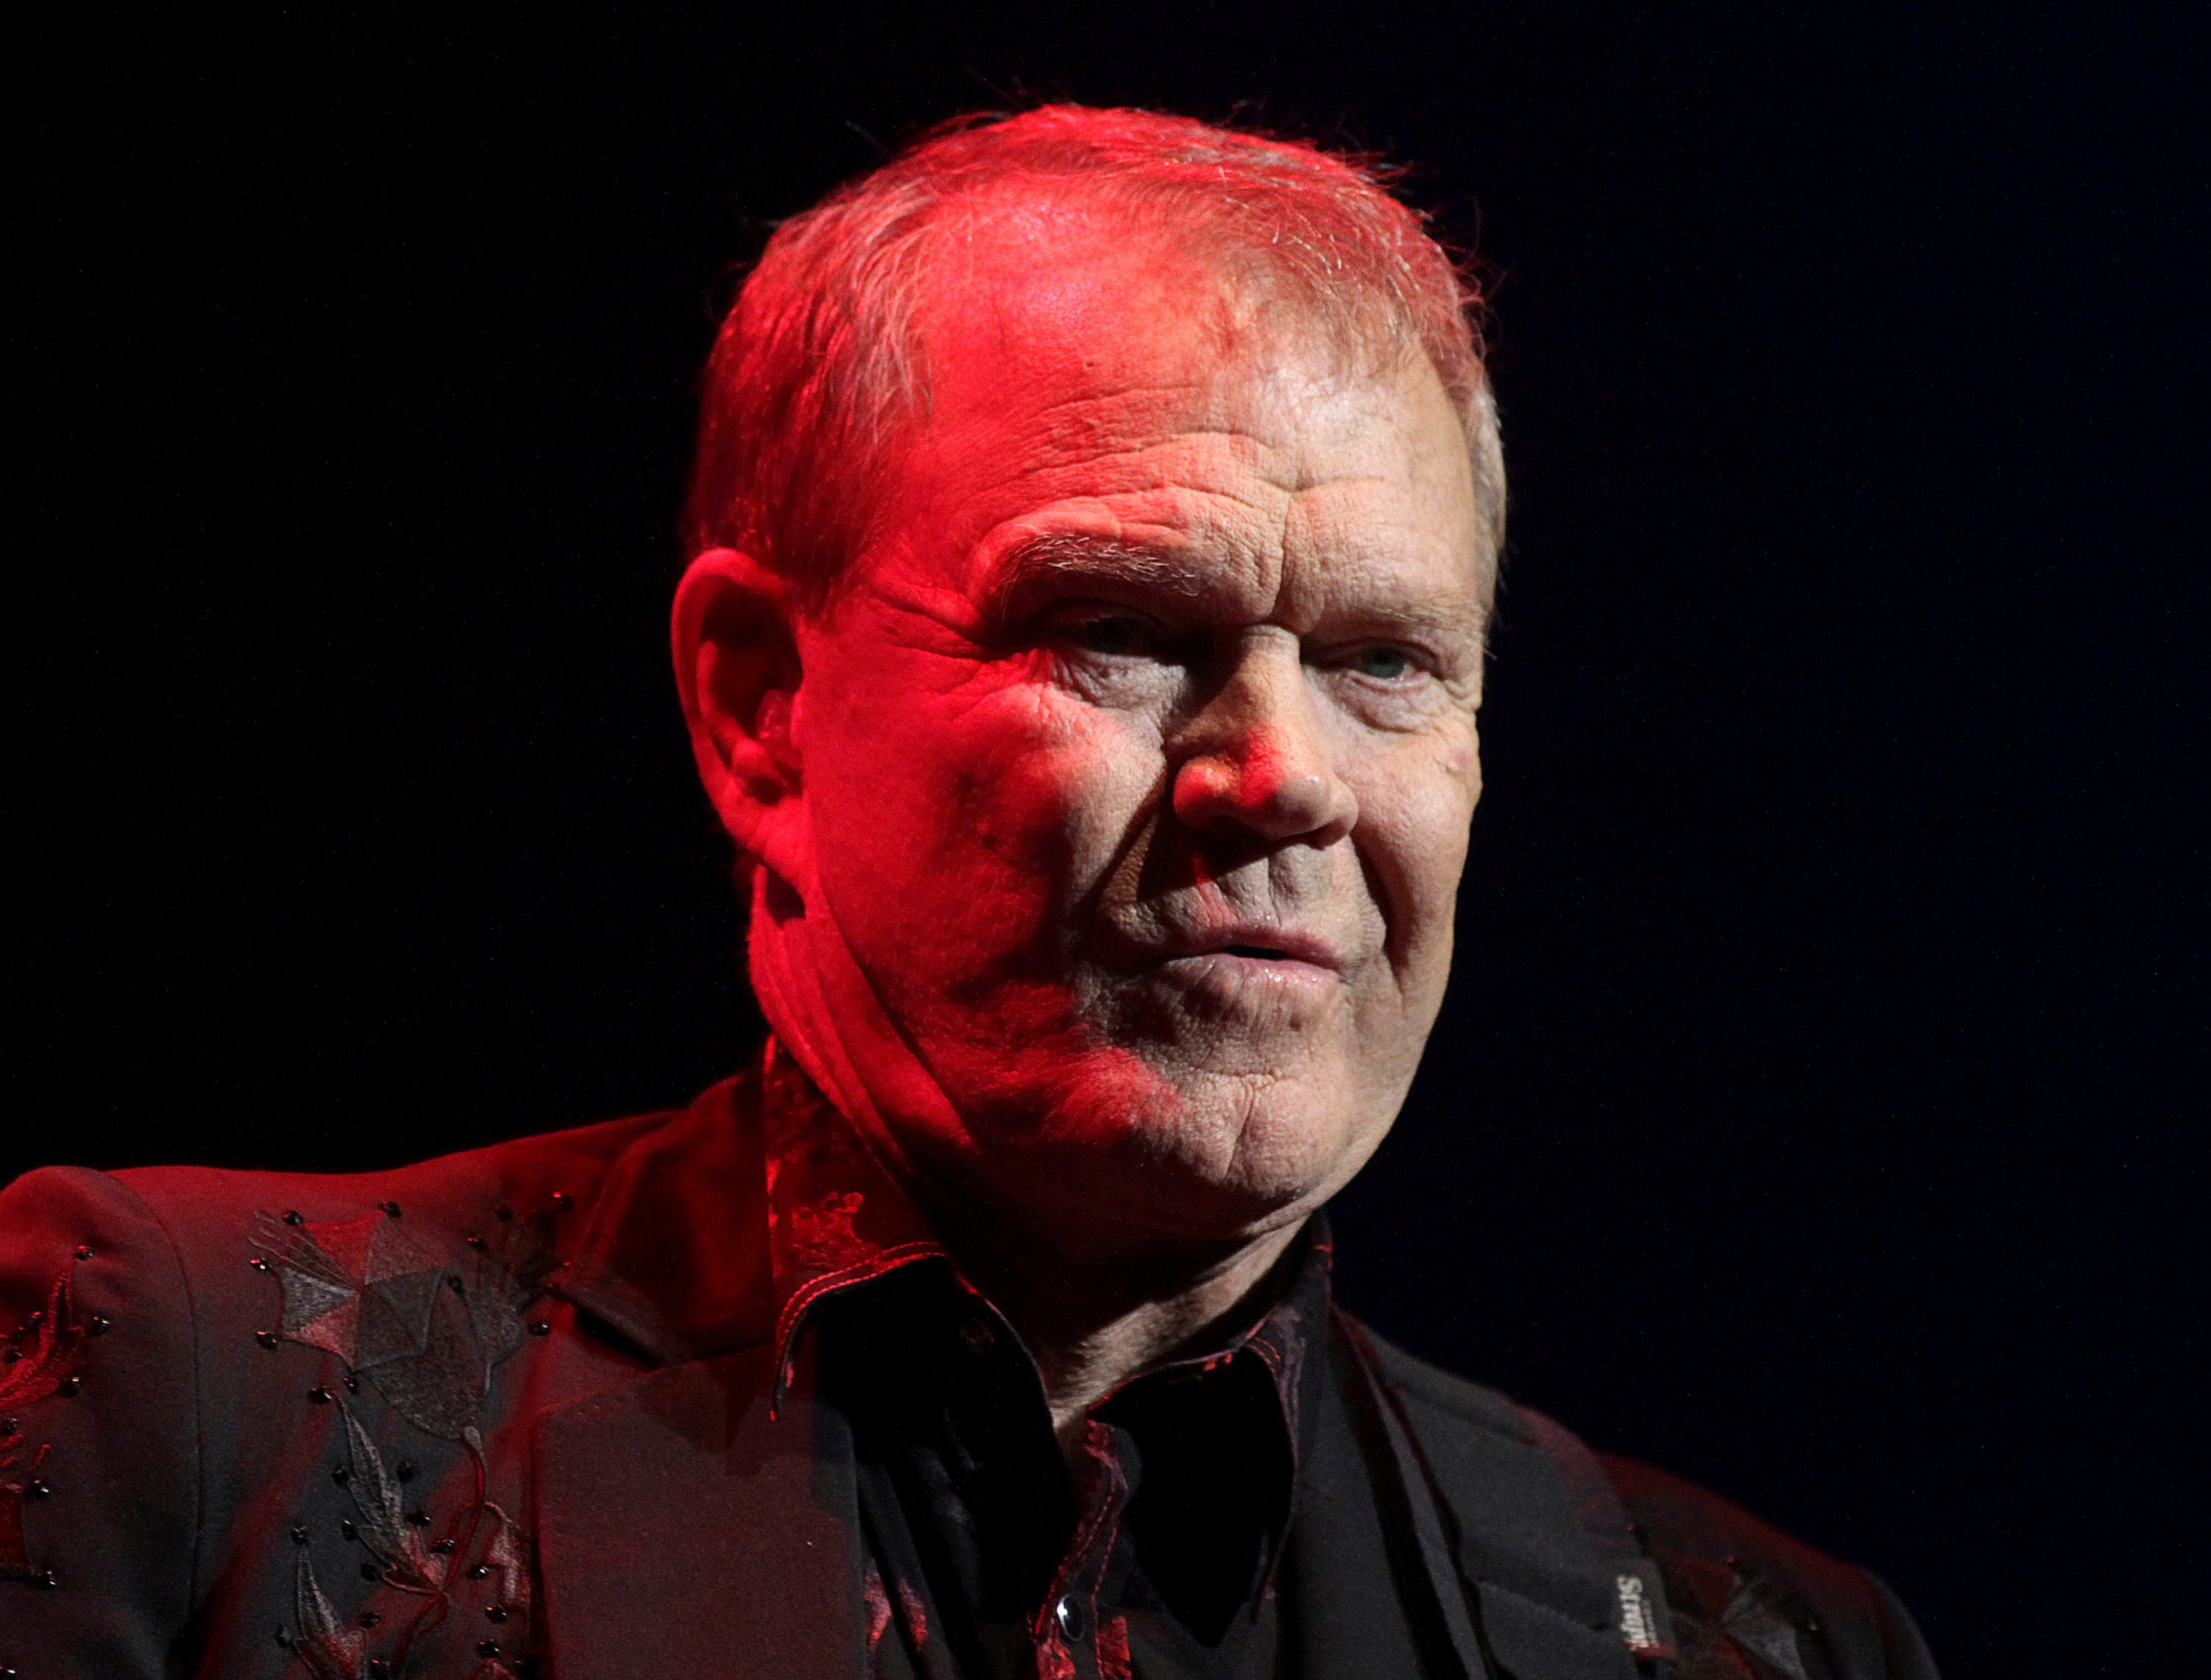 FILE PHOTO: Singer Glen Campbell performs on stage at Club Nokia in Los Angeles